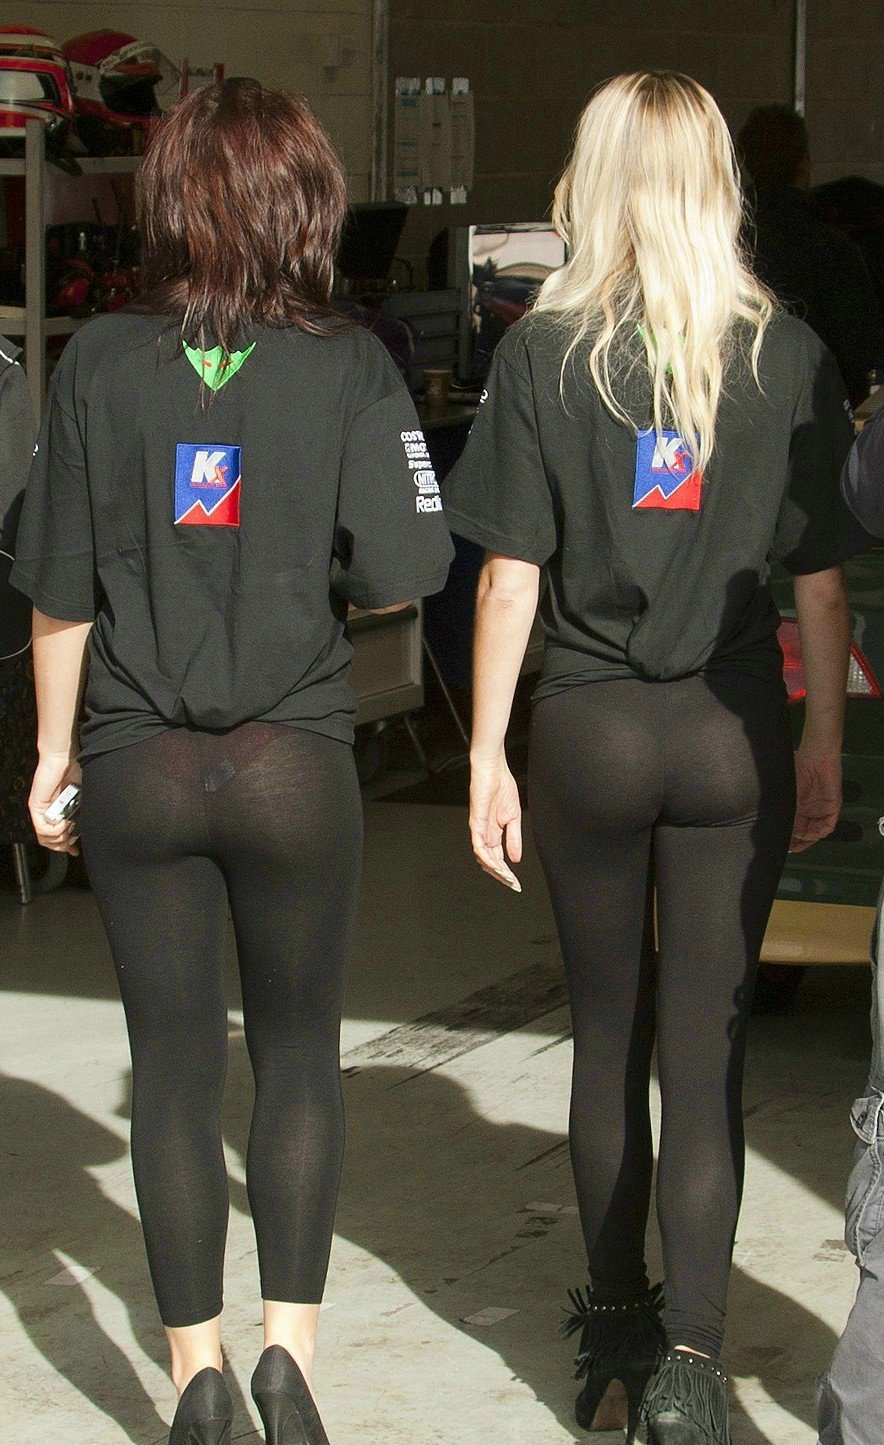 Babes in Thong Bikinis Under Yoga Pants